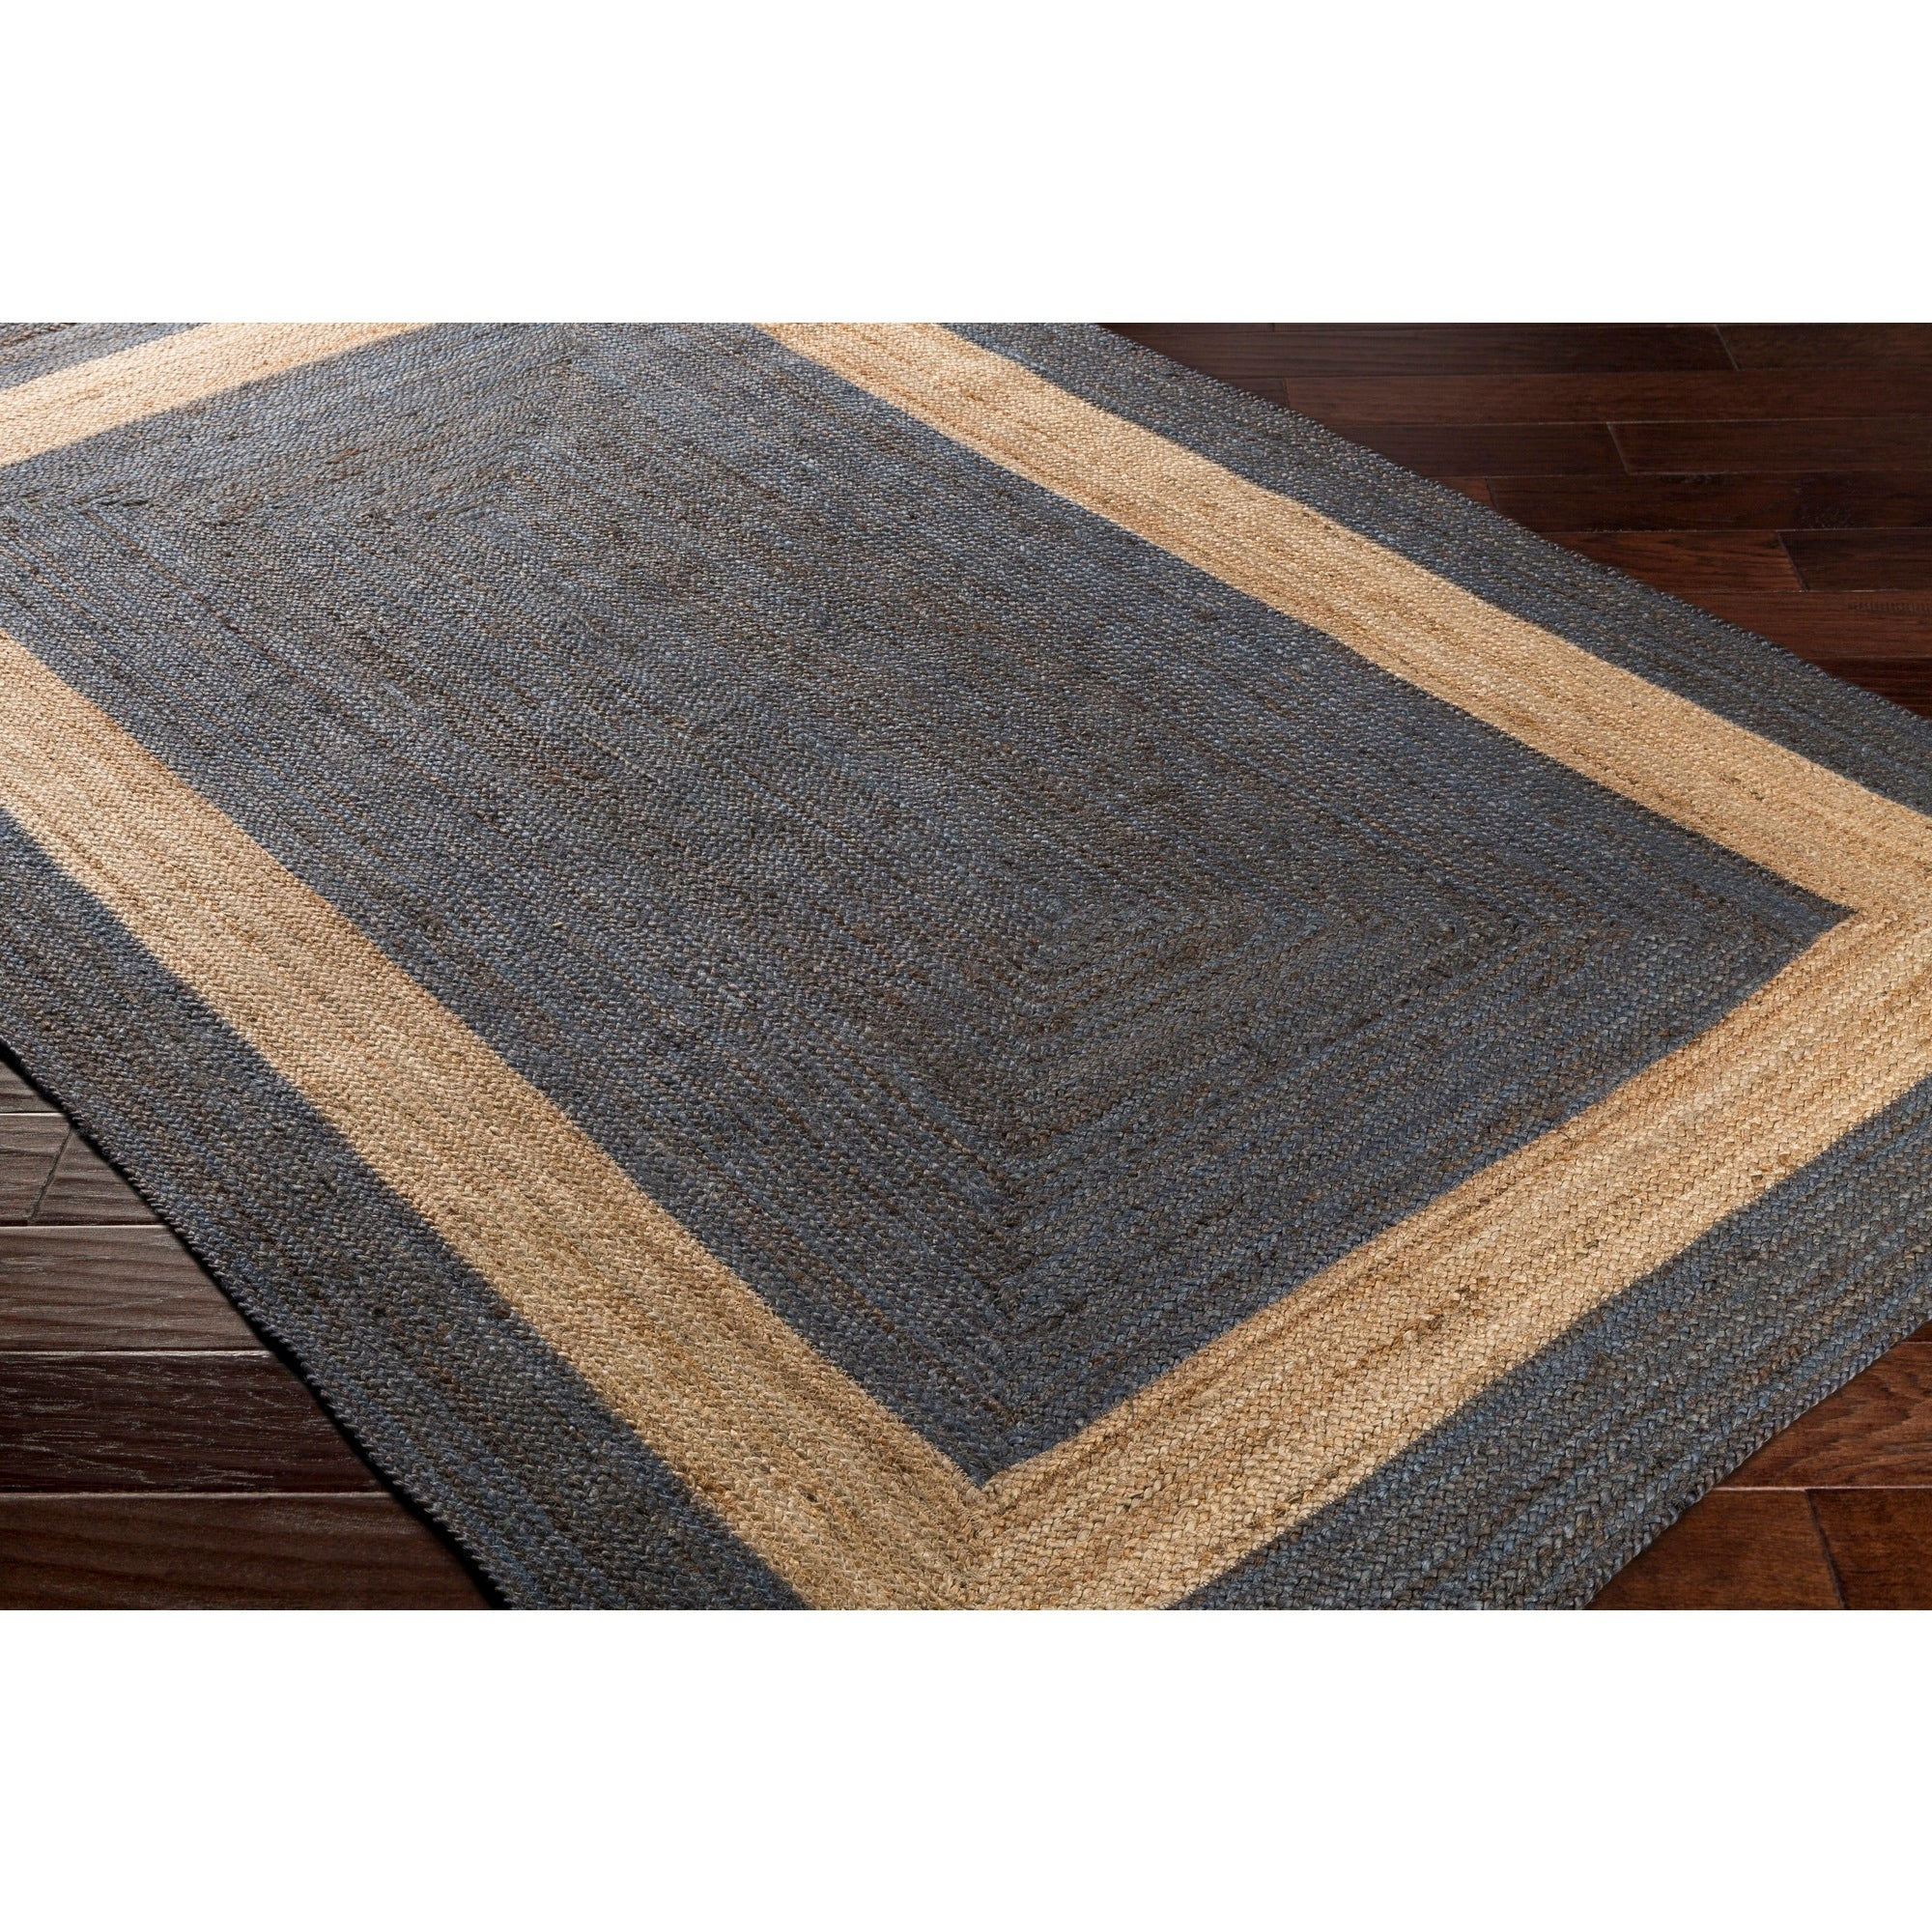 Hand Woven Canada Jute Area Rug Free Shipping On Orders Over 45 Com 11118461